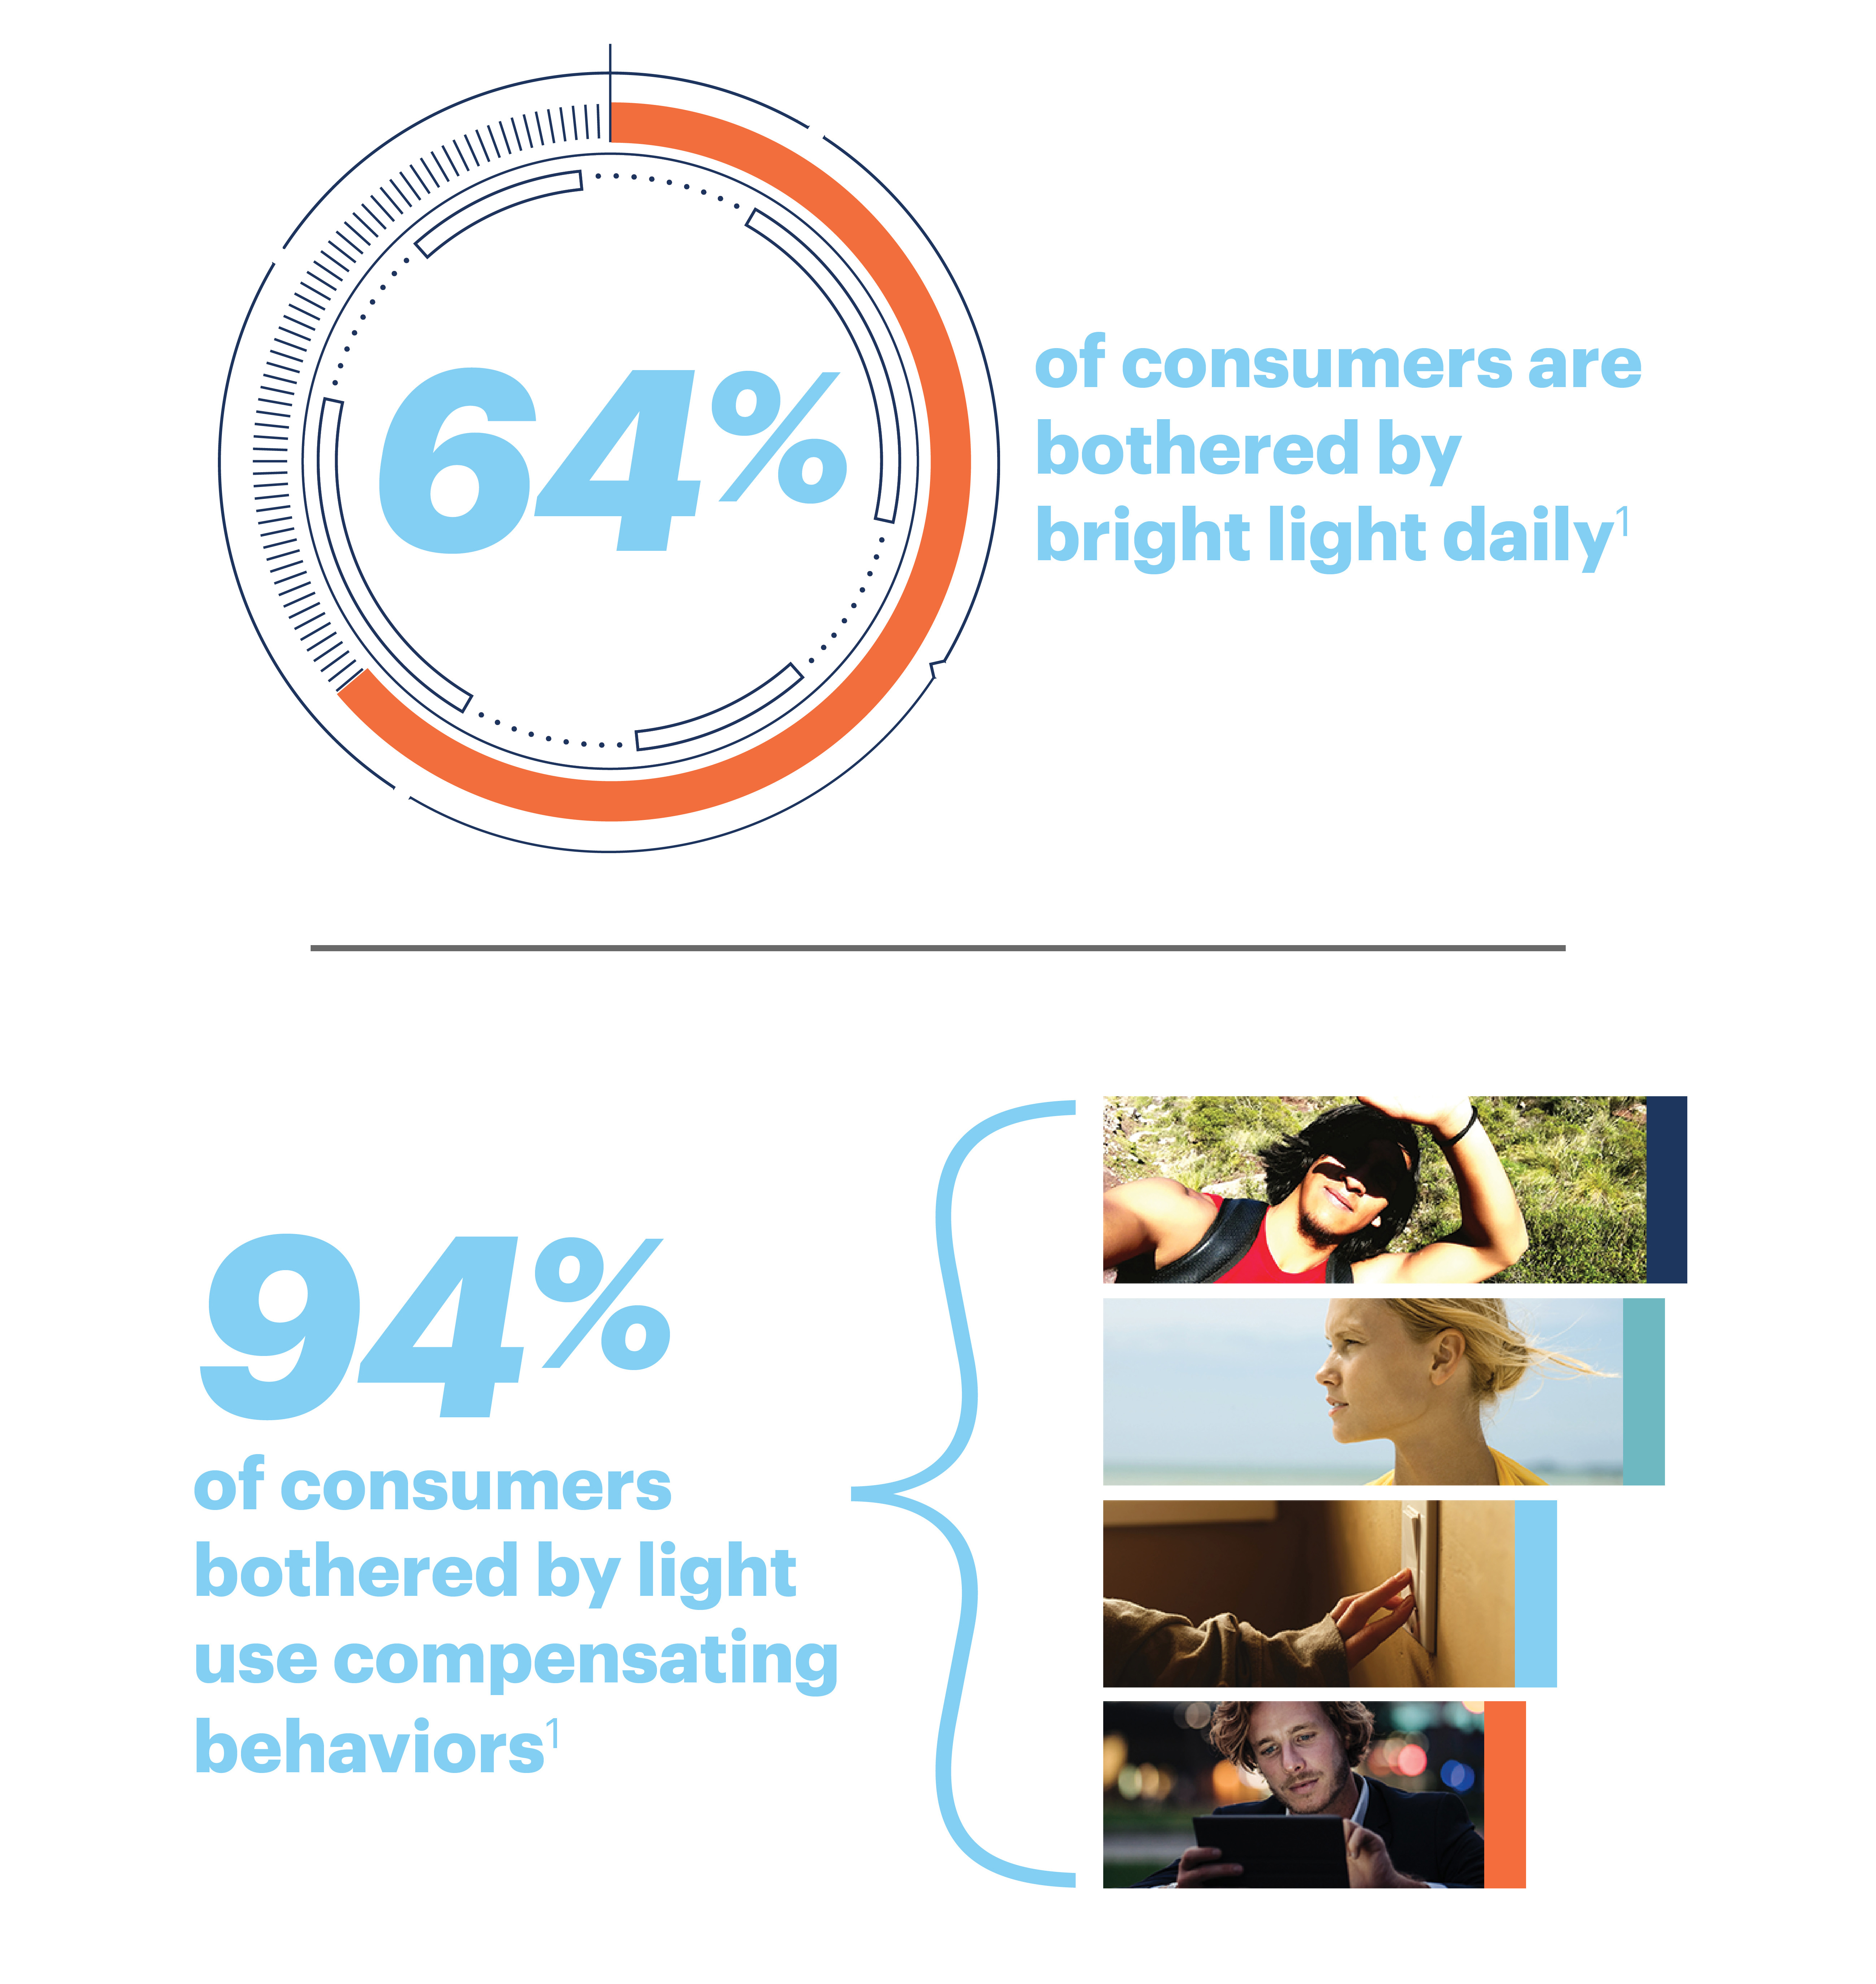 64% of consumers are bothered by bright light daily.1 94% of consumers bothered by light use compensating behaviors.1